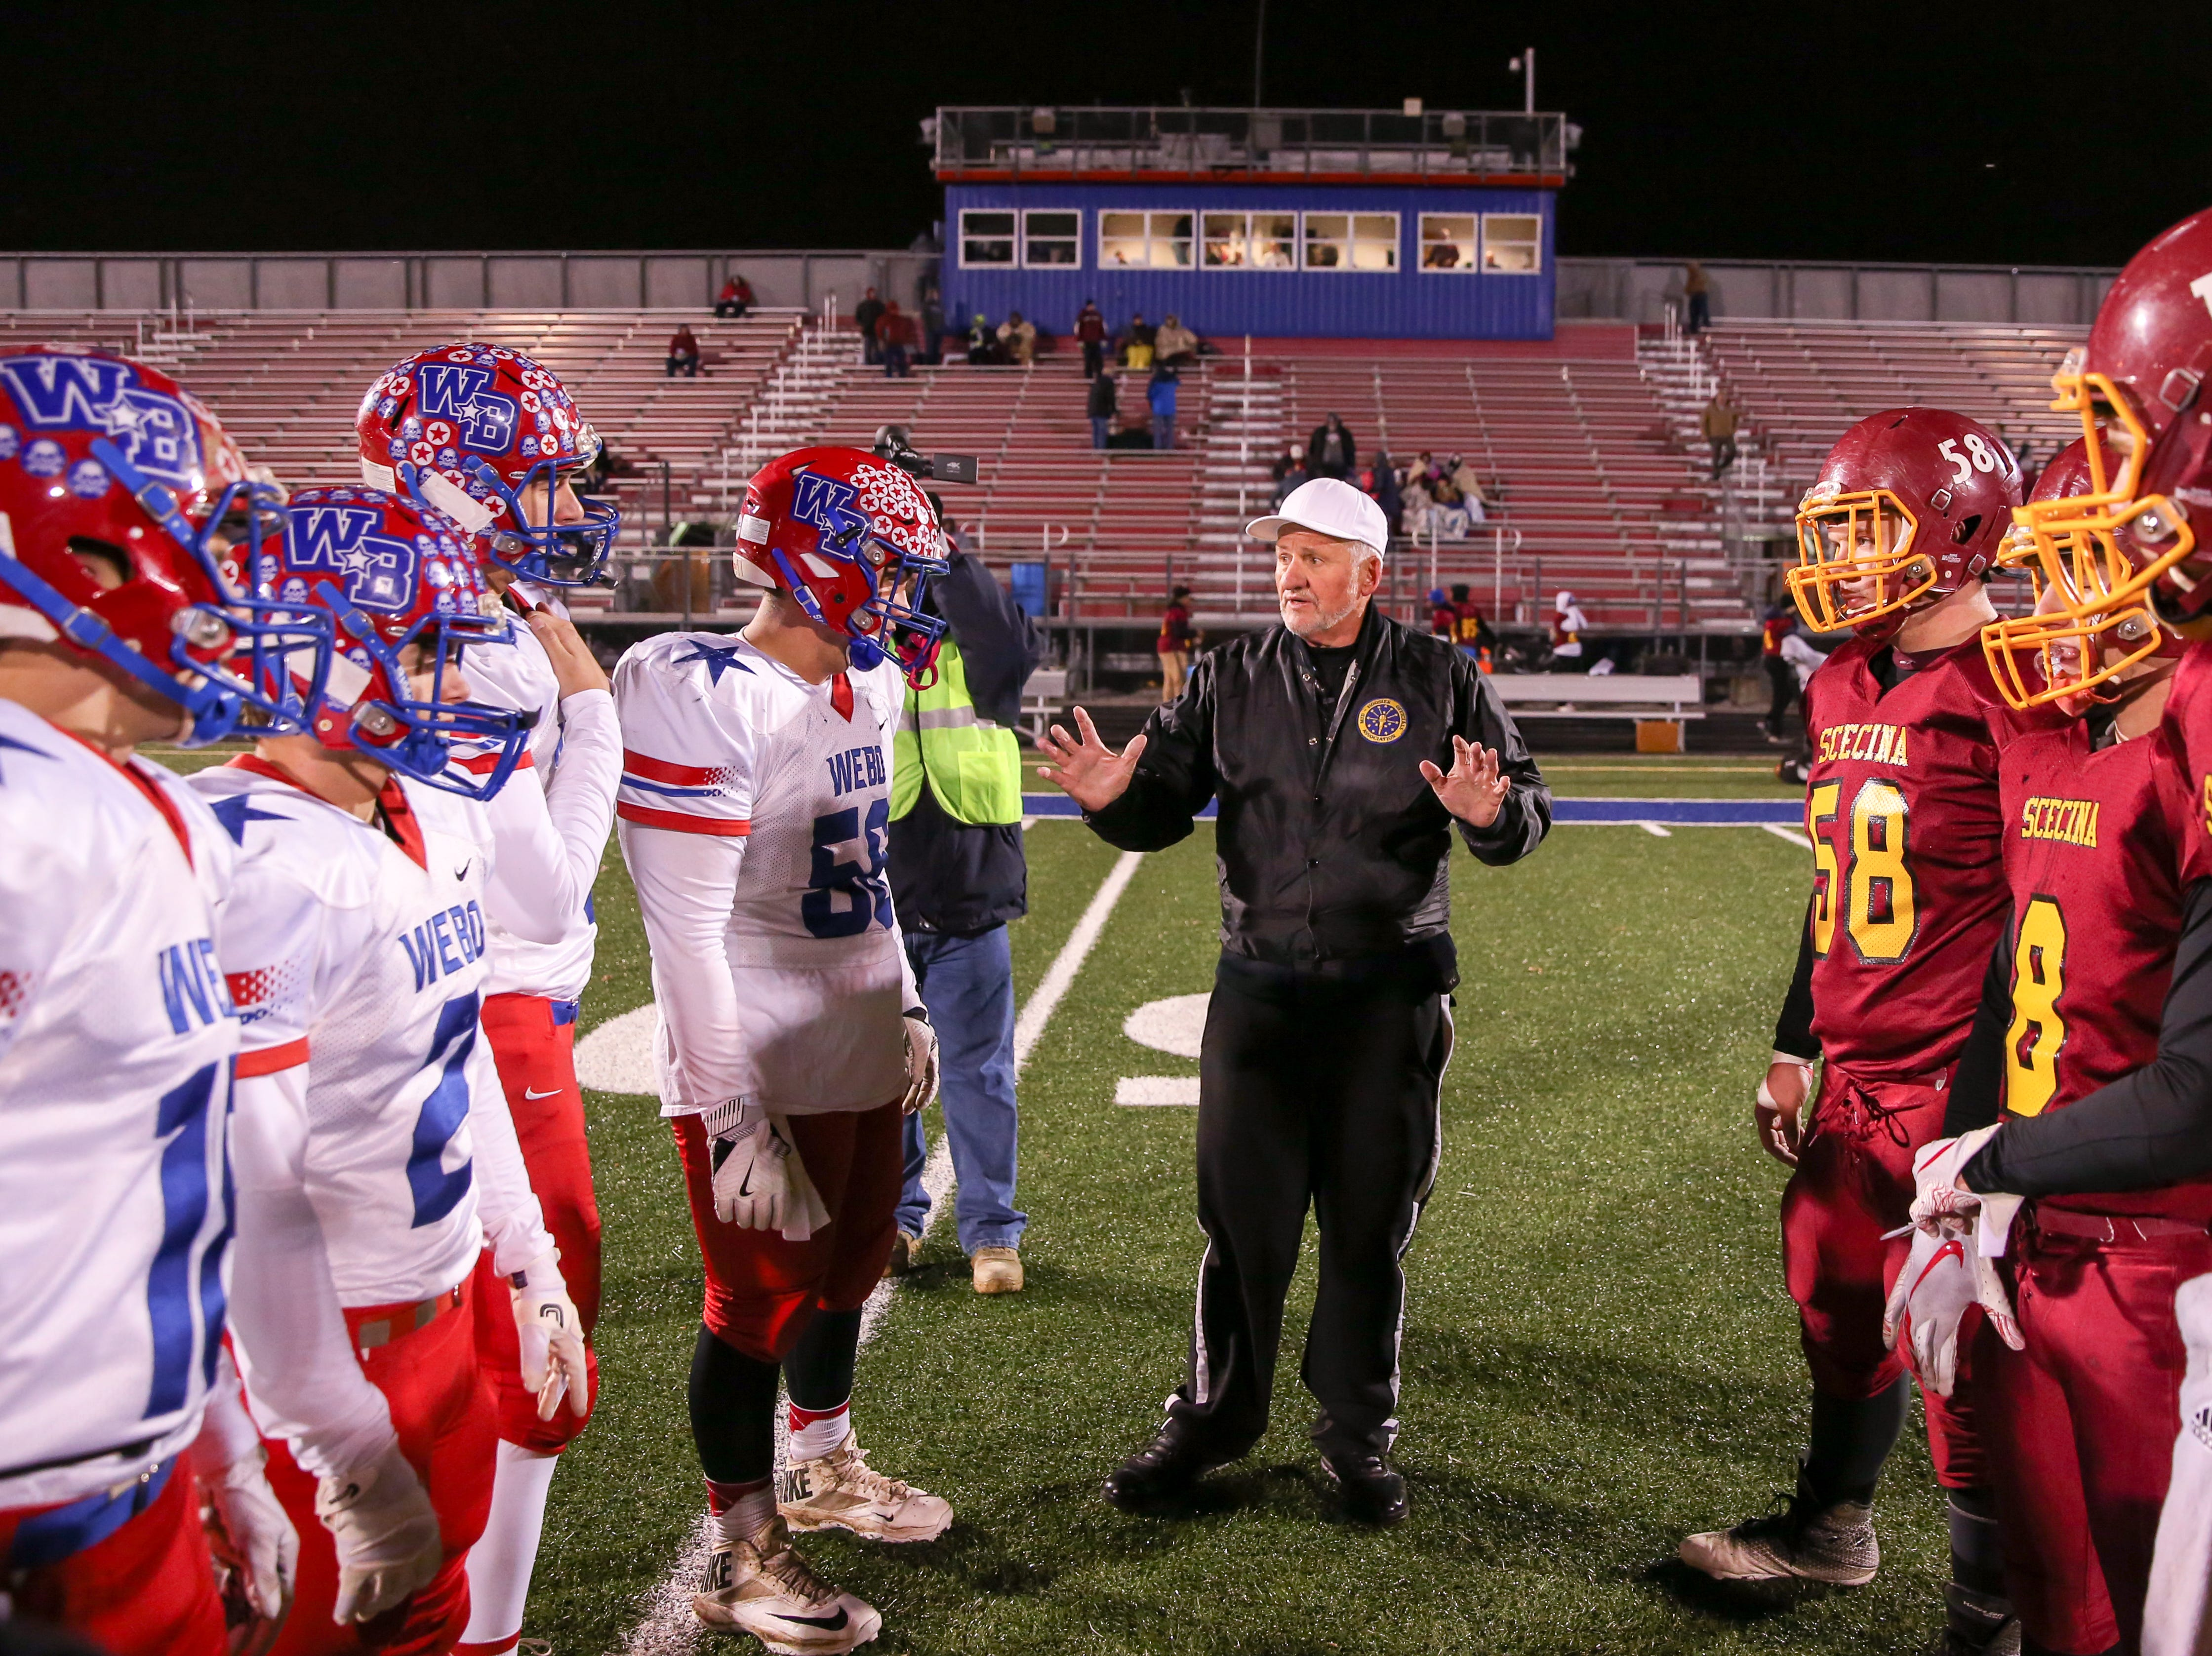 Team captains meet for the coin toss for the start of Indianapolis Scecina vs Western Boone High School varsity football in the Class 2A Regional Championship held at Roncalli High School, Friday, November 9, 2018.